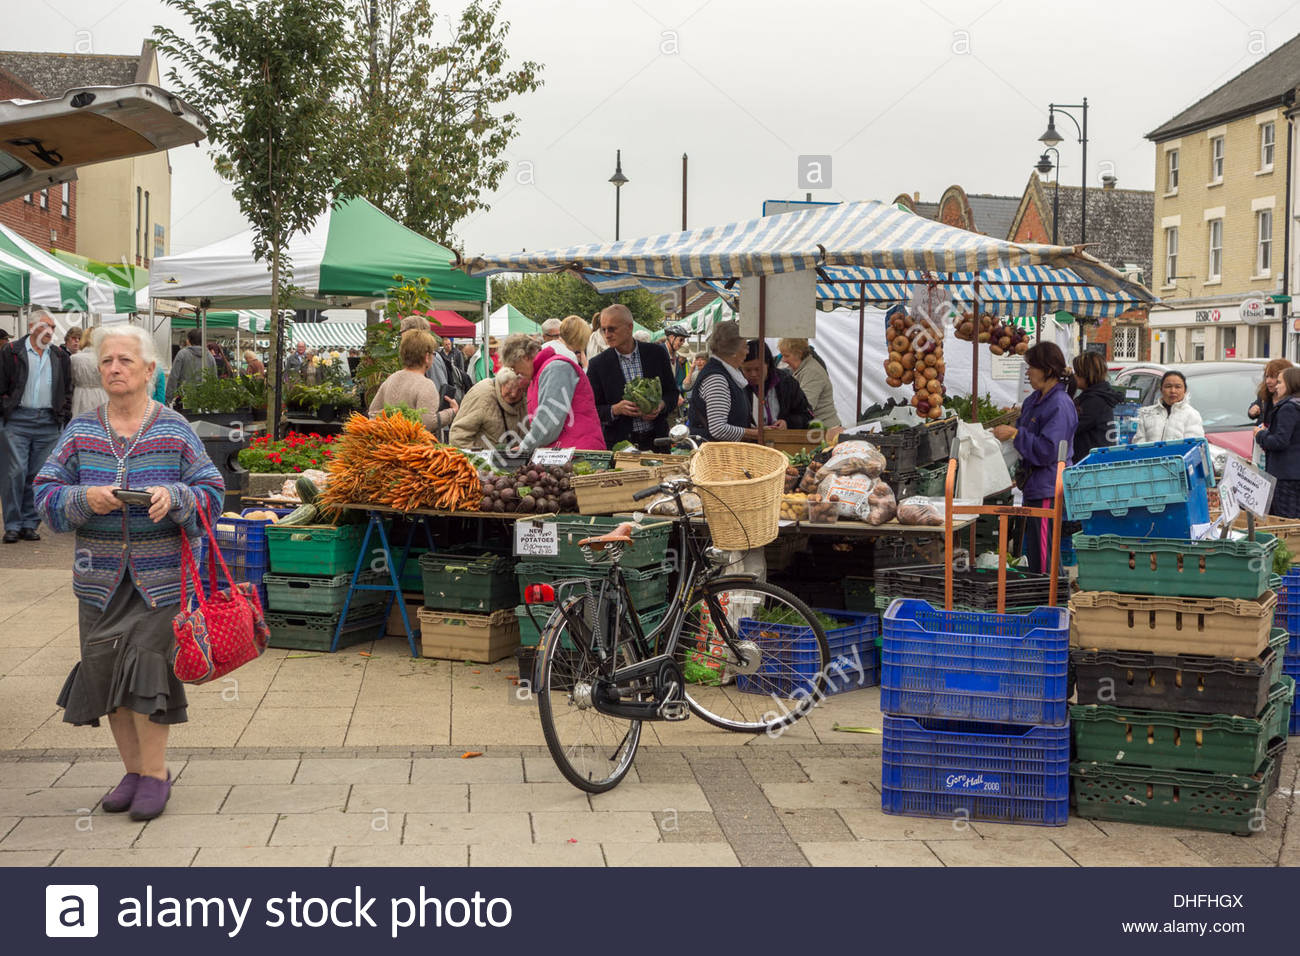 Shoppers at the market in St Ives, Cambridgeshire - Stock Image